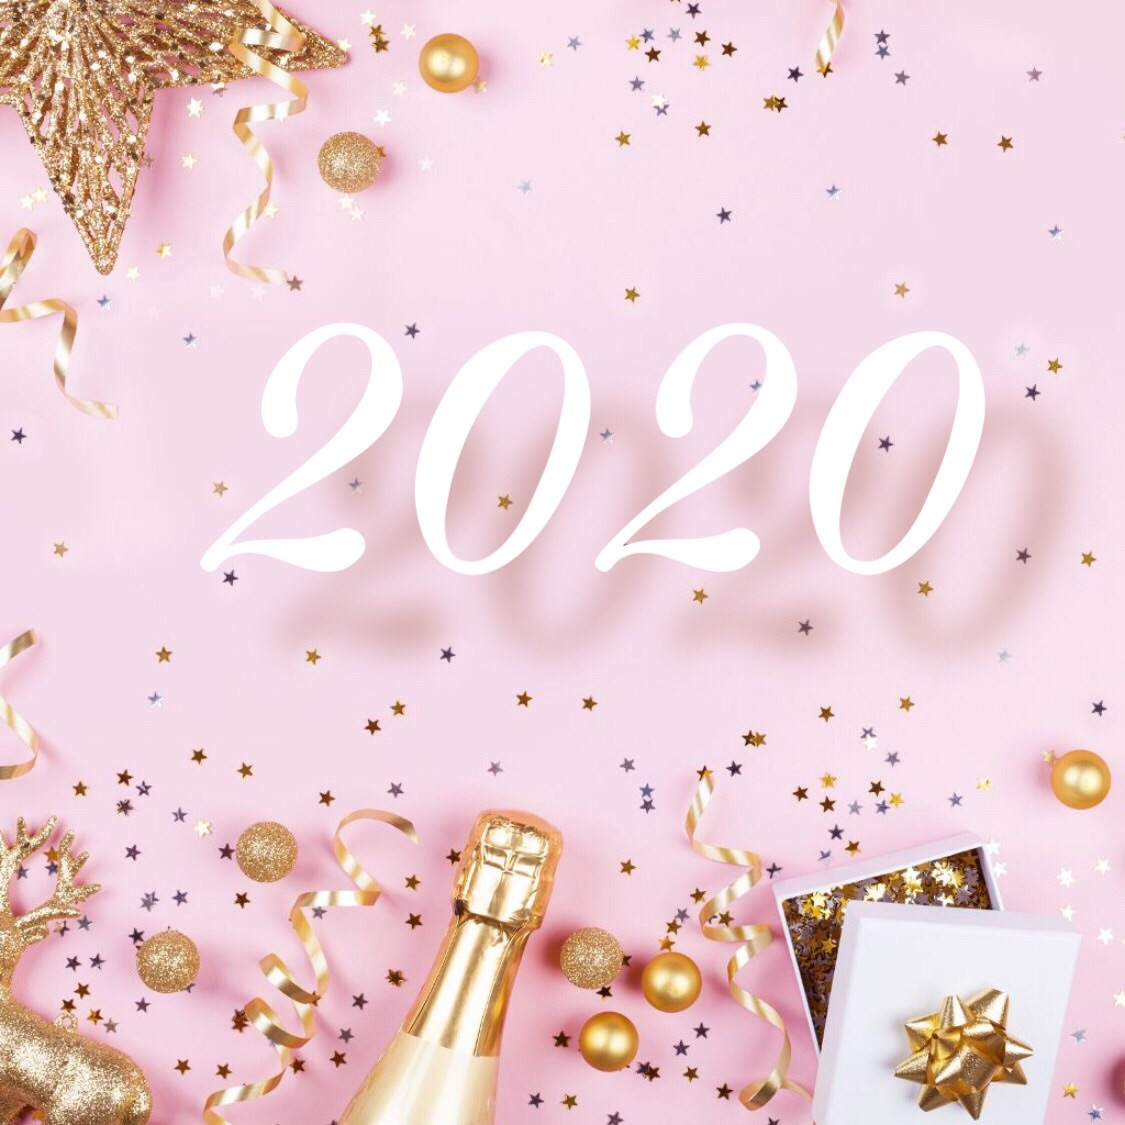 2020 wallpapers discovered by 1995 on We Heart It 1125x1125